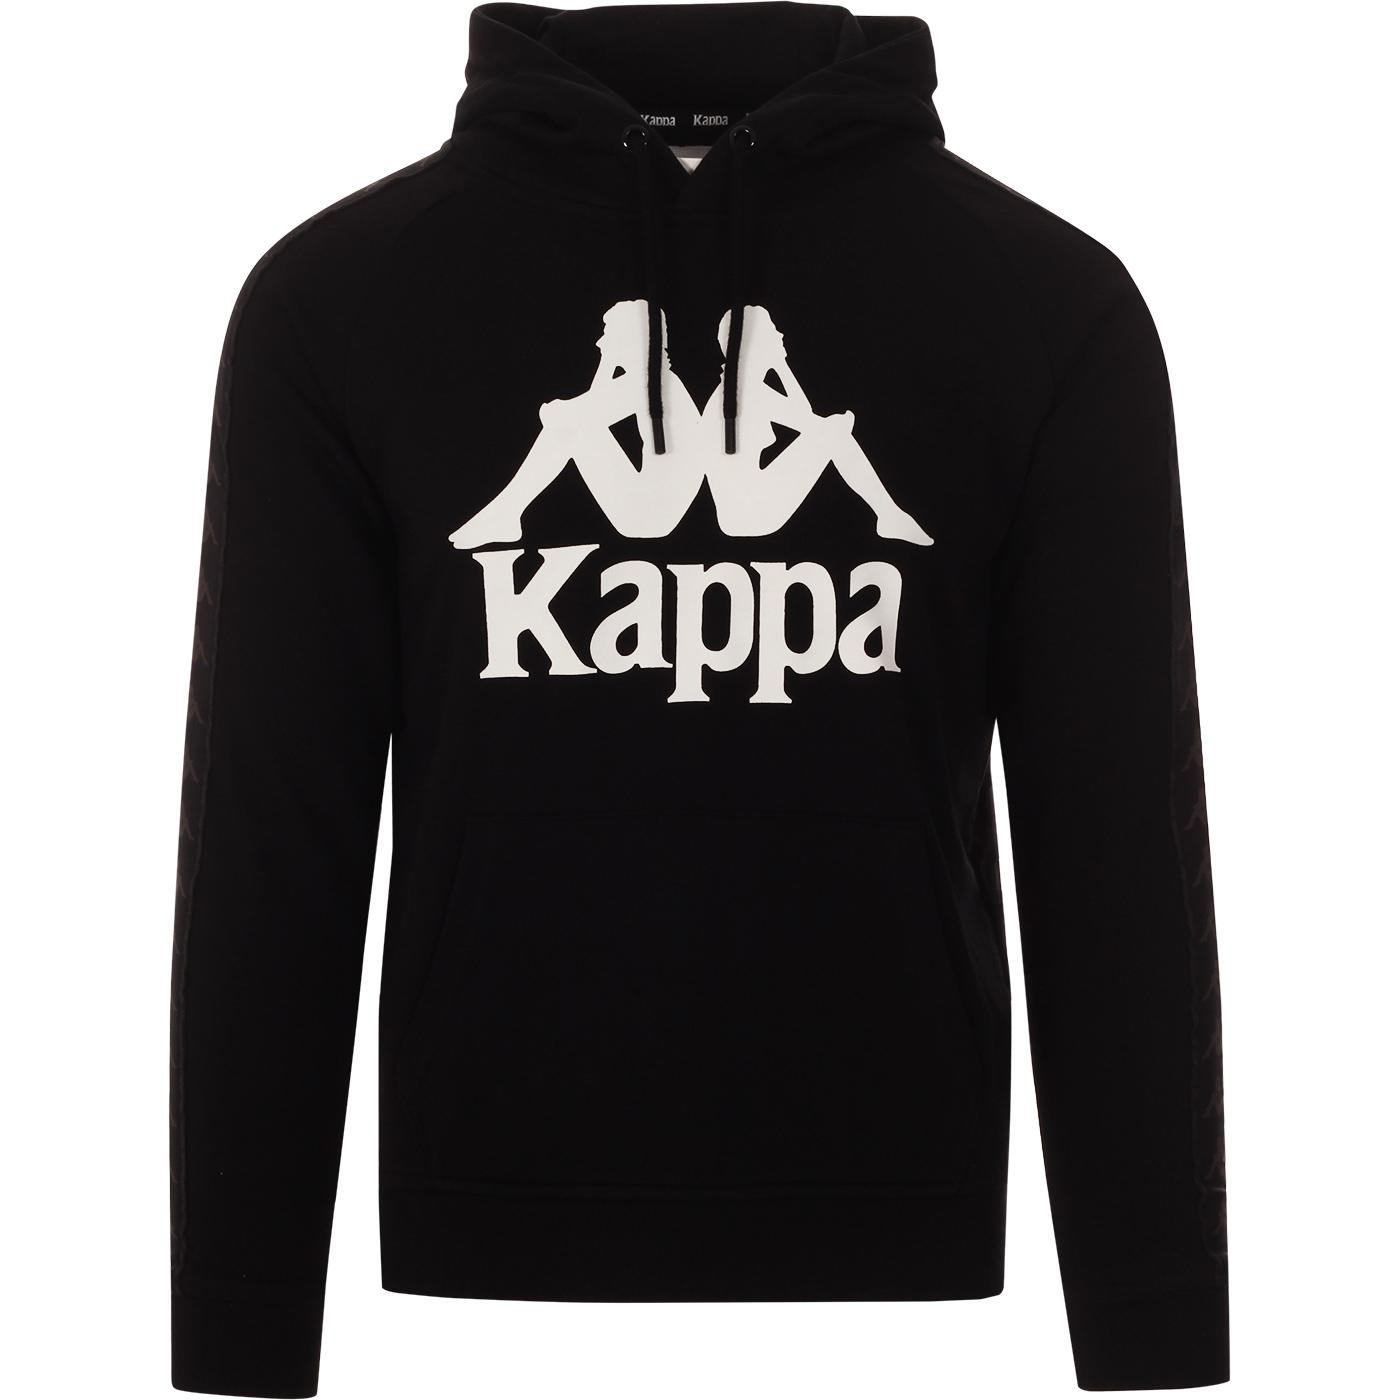 KAPPA Hurtados 222 Banda Hooded Sweatshirt (Black)